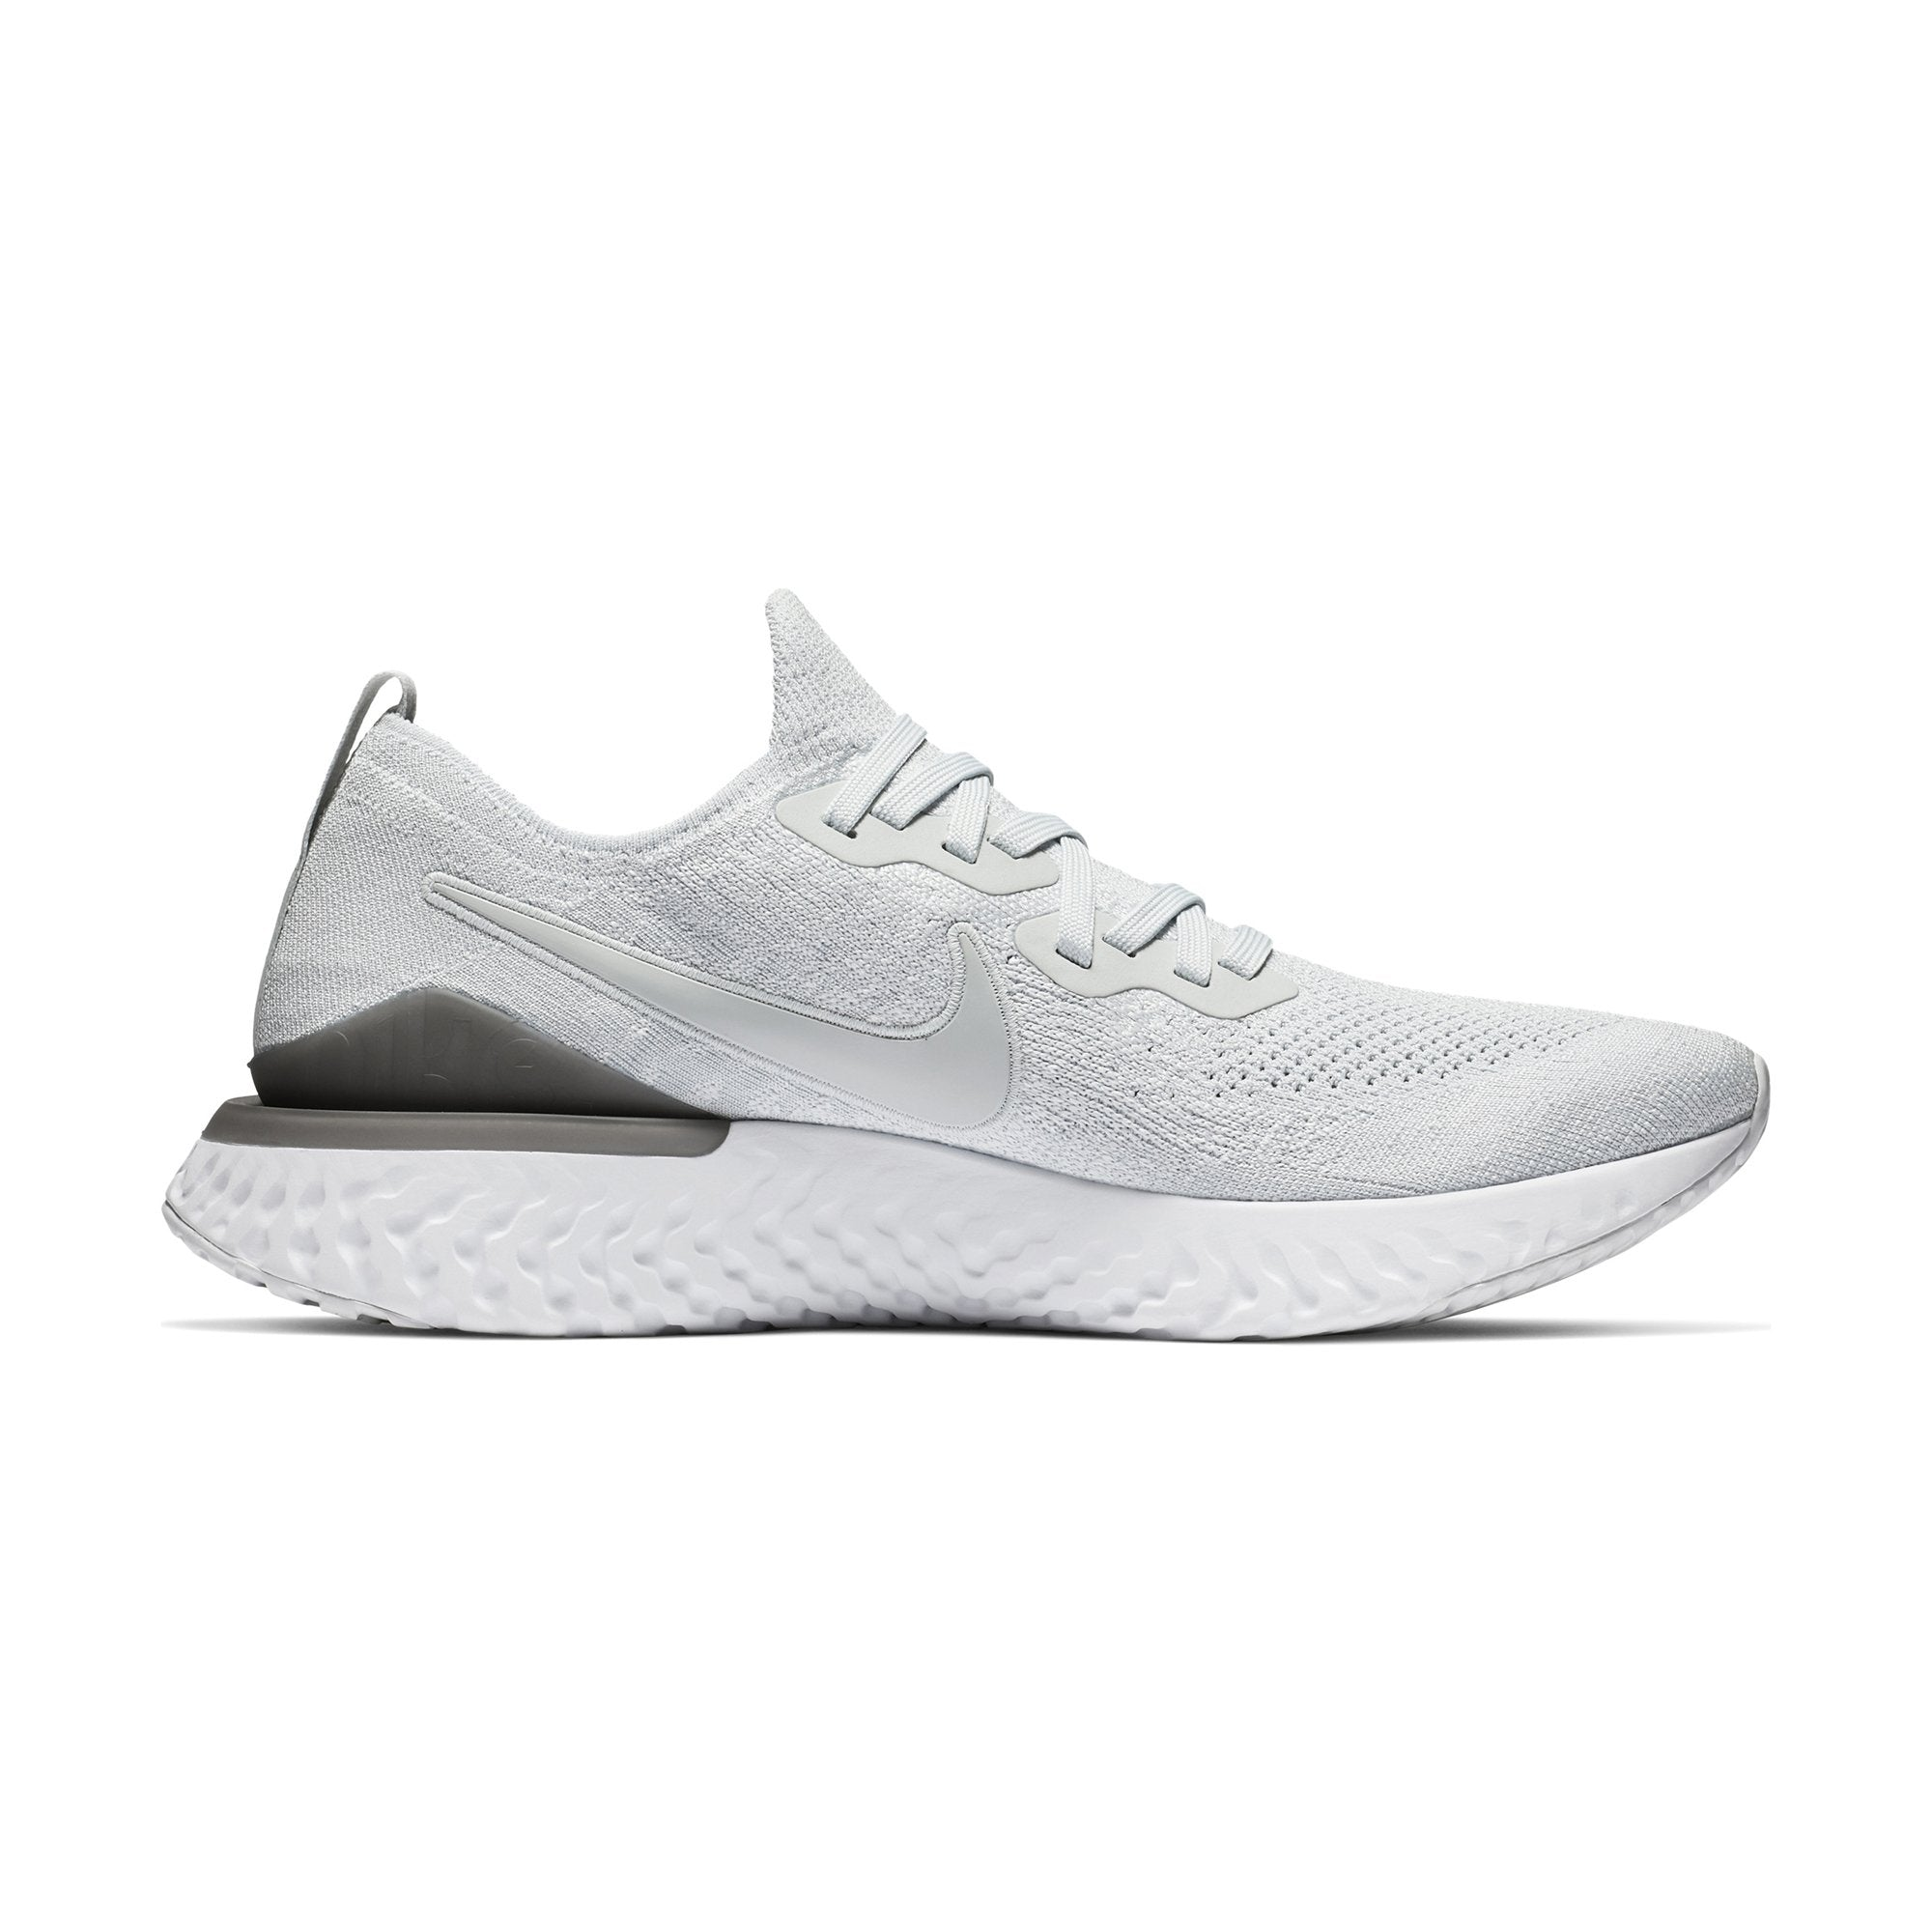 2cb6db684c443 Buy Nike Men Epic React Flyknit 2 Running Shoes